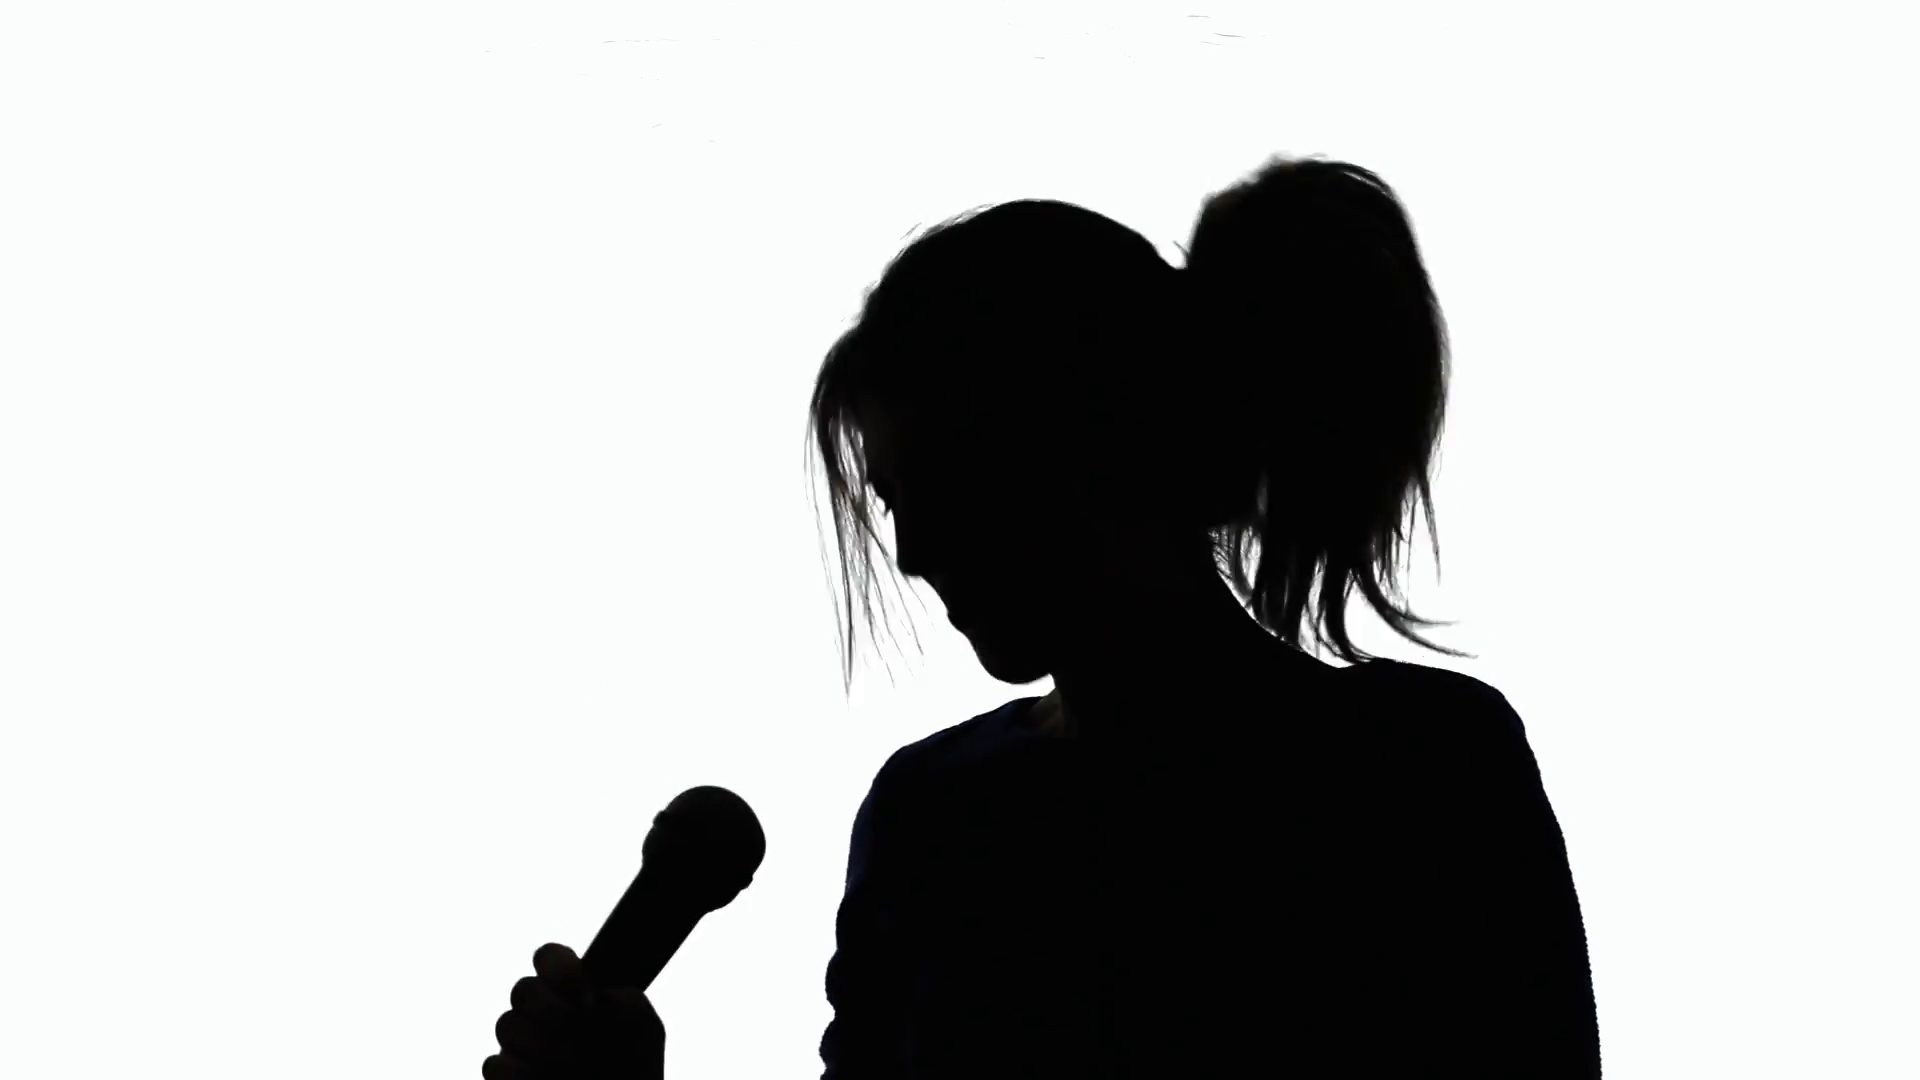 1920x1080 Silhouette Woman Sing Crazy. A Crazy Singer (A Woman) Moving